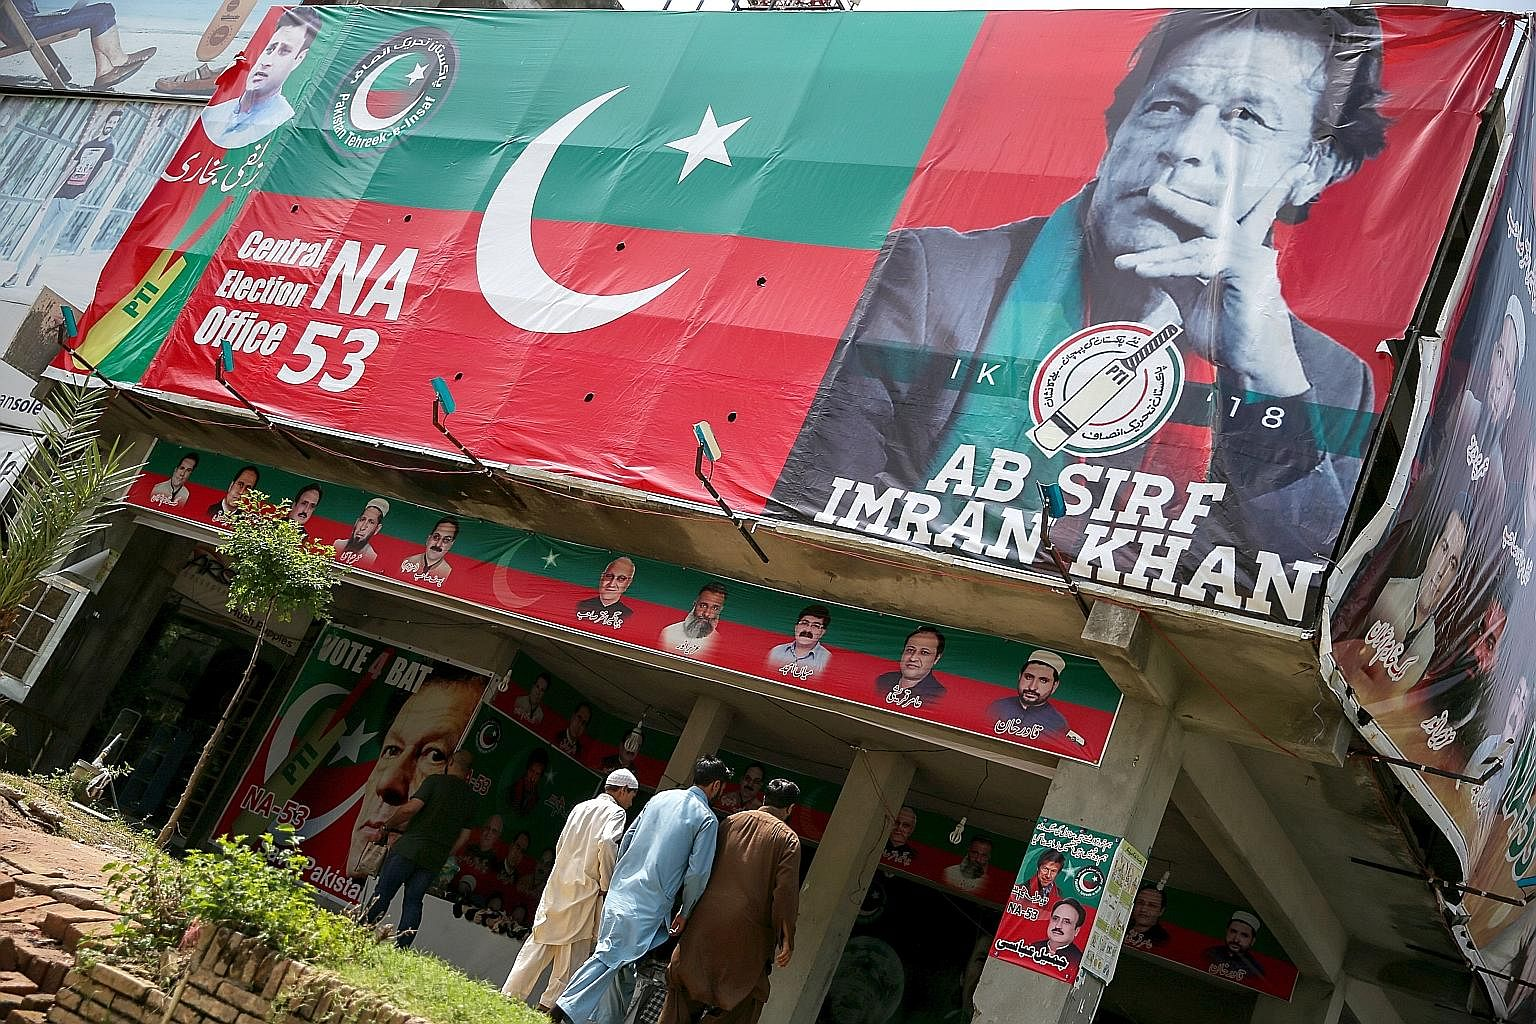 Much stock is being placed on cricket star-turned-politician Imran Khan, chairman of Pakistan Tehreek-e-Insaf, the single largest party in the National Assembly after last week's general election, to stabilise the country and improve relations with i